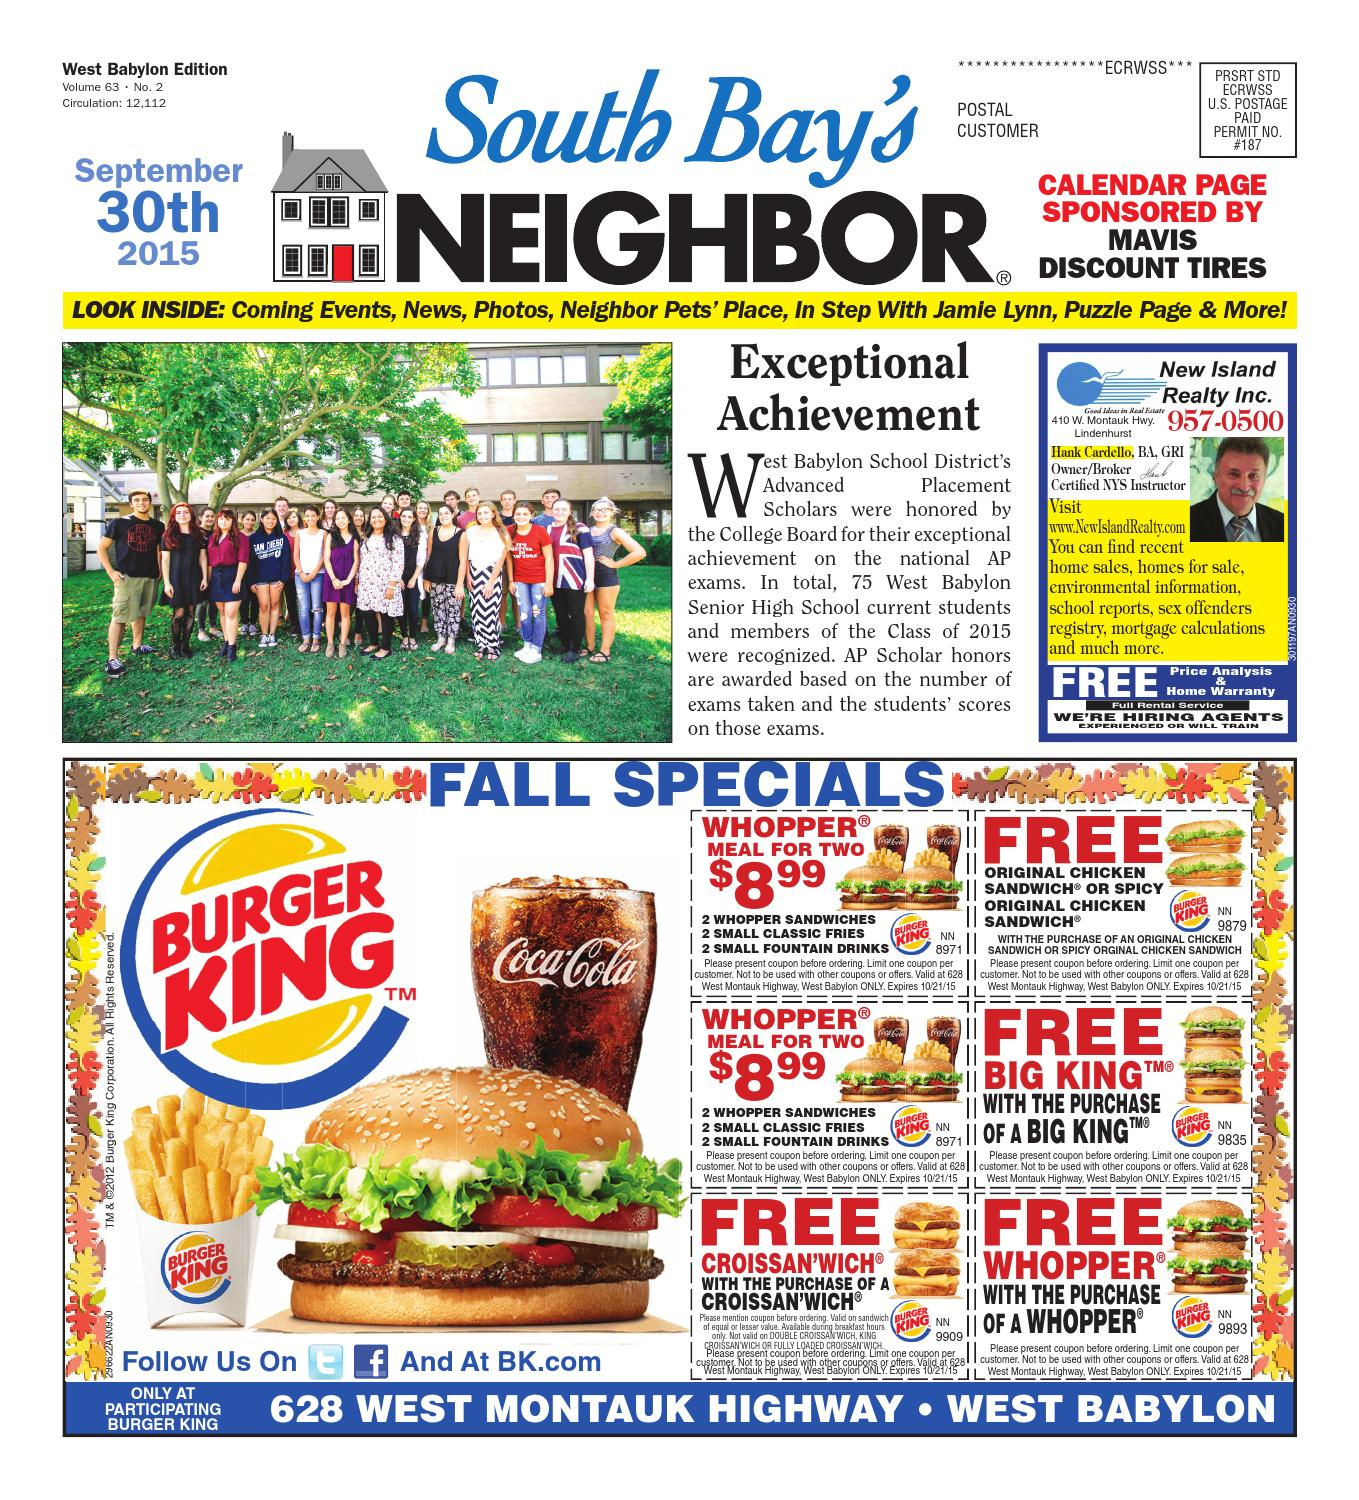 September 30 2015 West Babylon By South Bay S Neighbor Newspapers